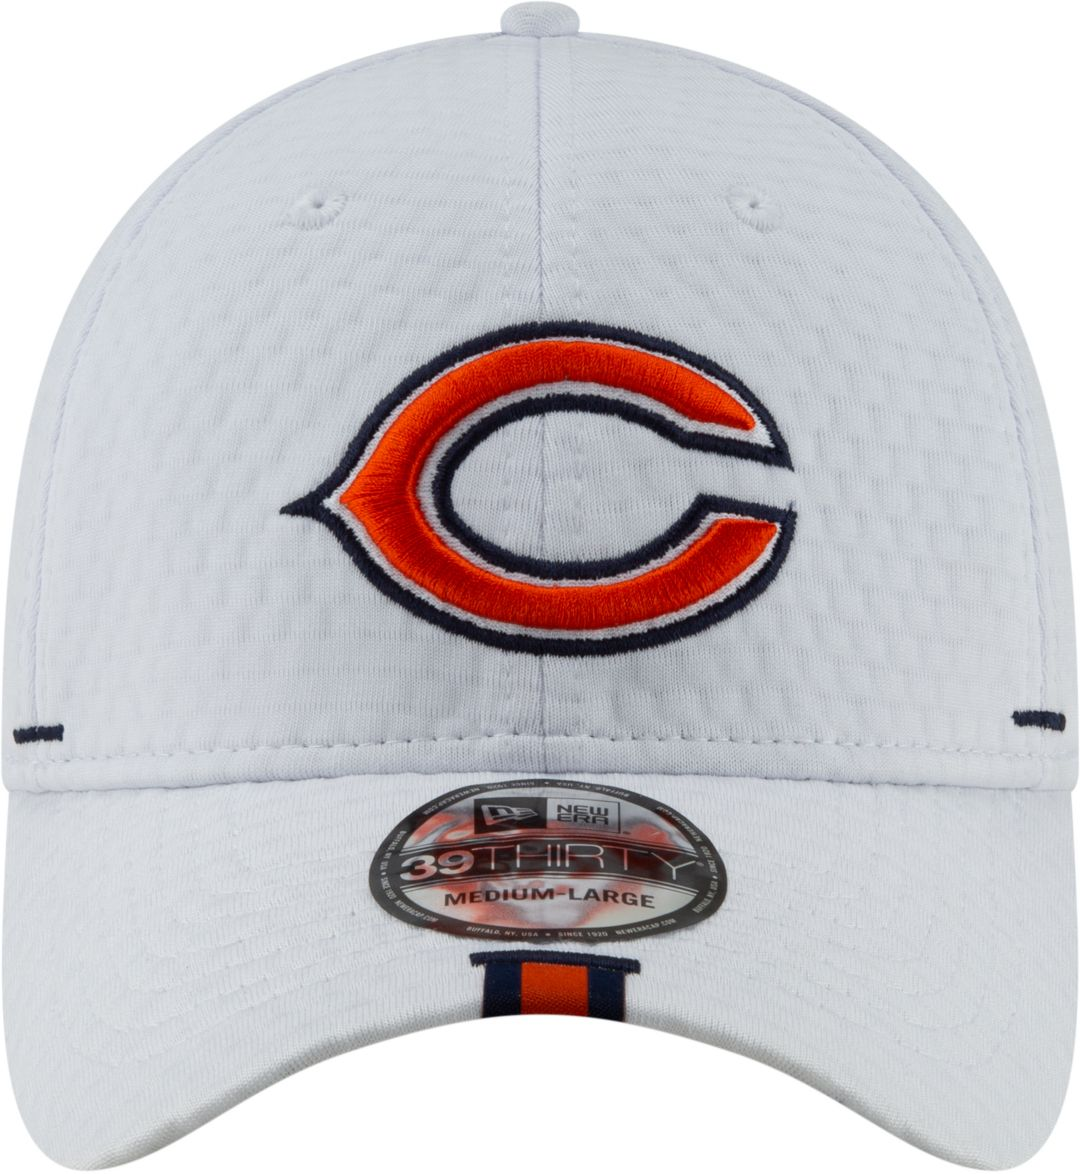 fea72d7356f7eb New Era Men's Chicago Bears Sideline Training Camp 39Thirty Stretch Fit  White Hat